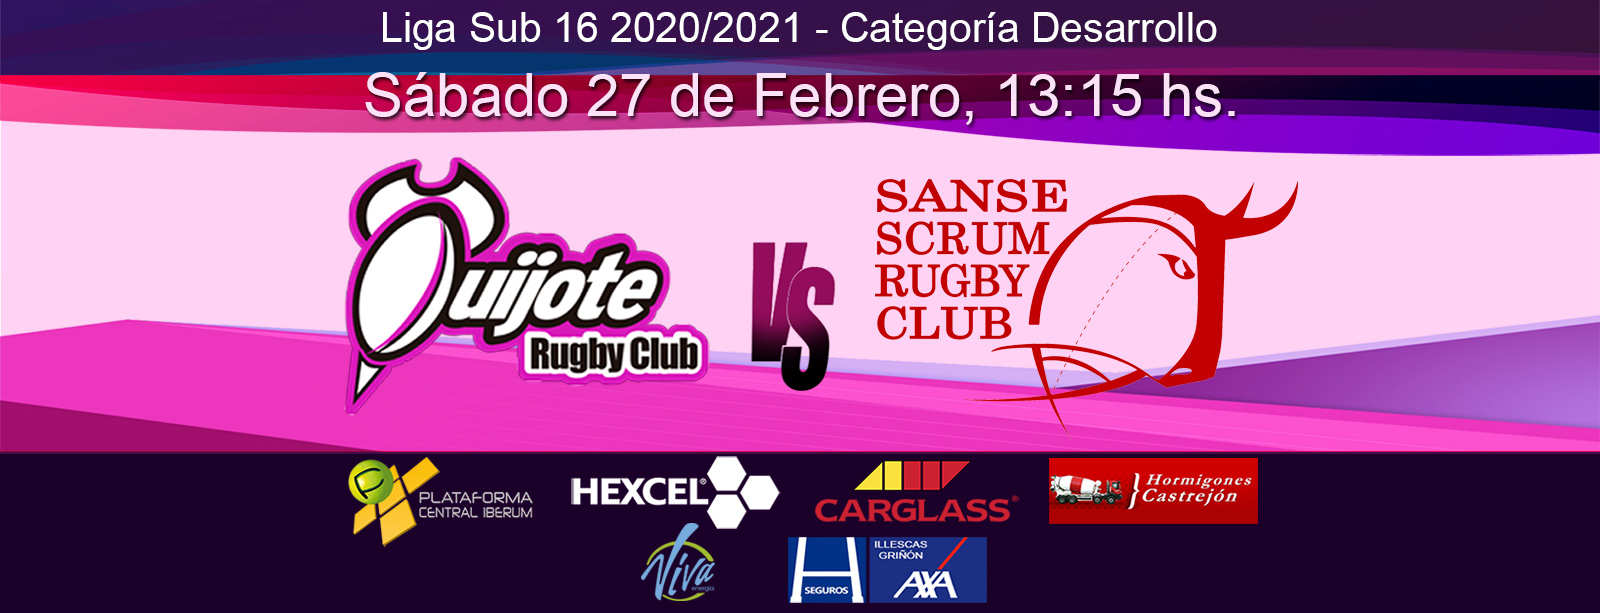 Sub16: Quijote RC vs Sanse Scrum (27/02/21)